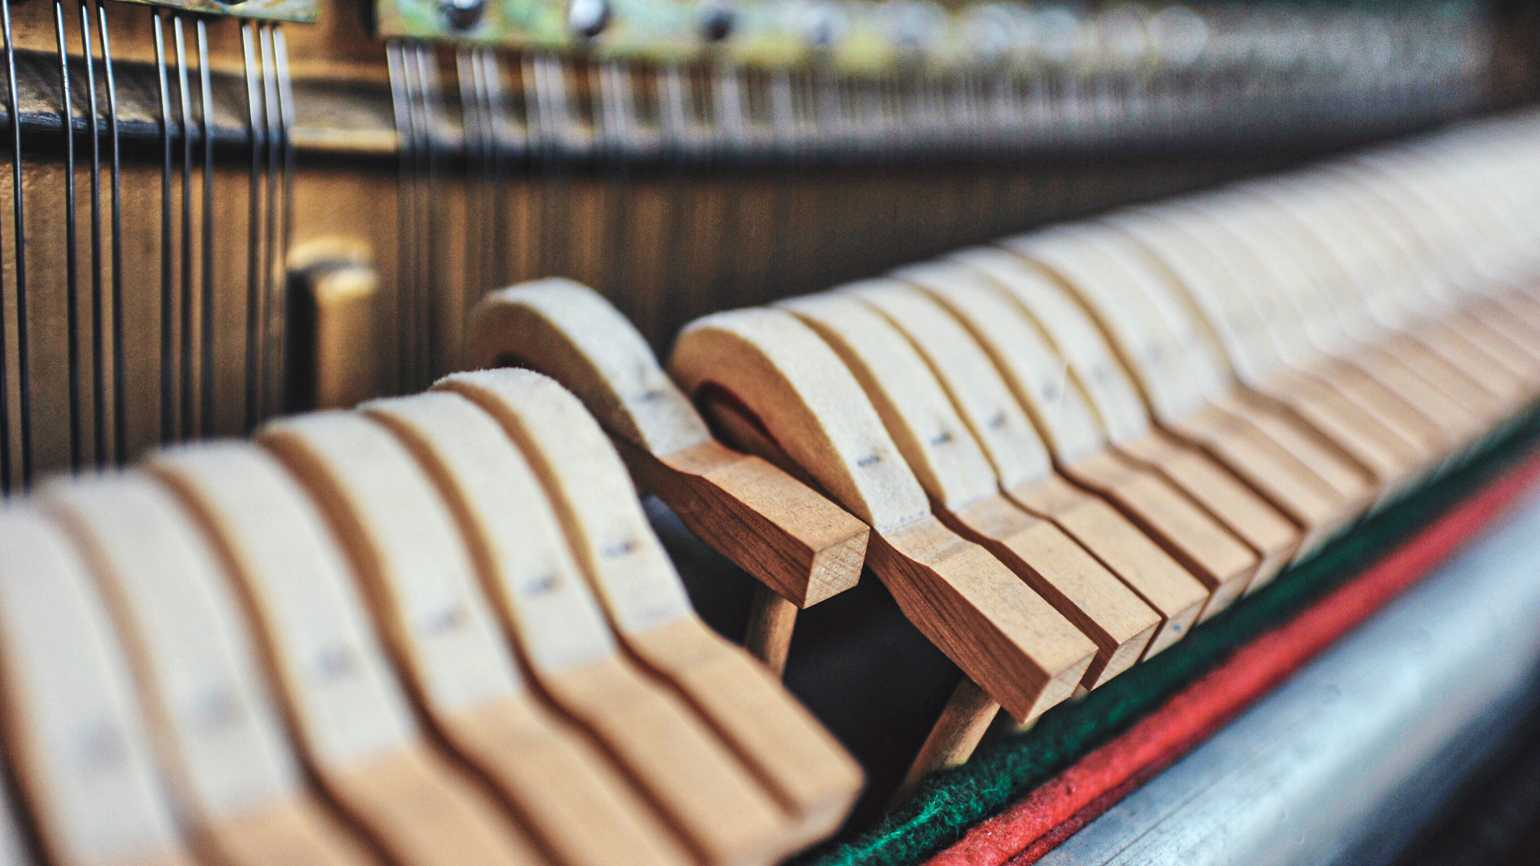 The inside of a piano; Photo credit: NIAN LIU/GETTY IMAGES